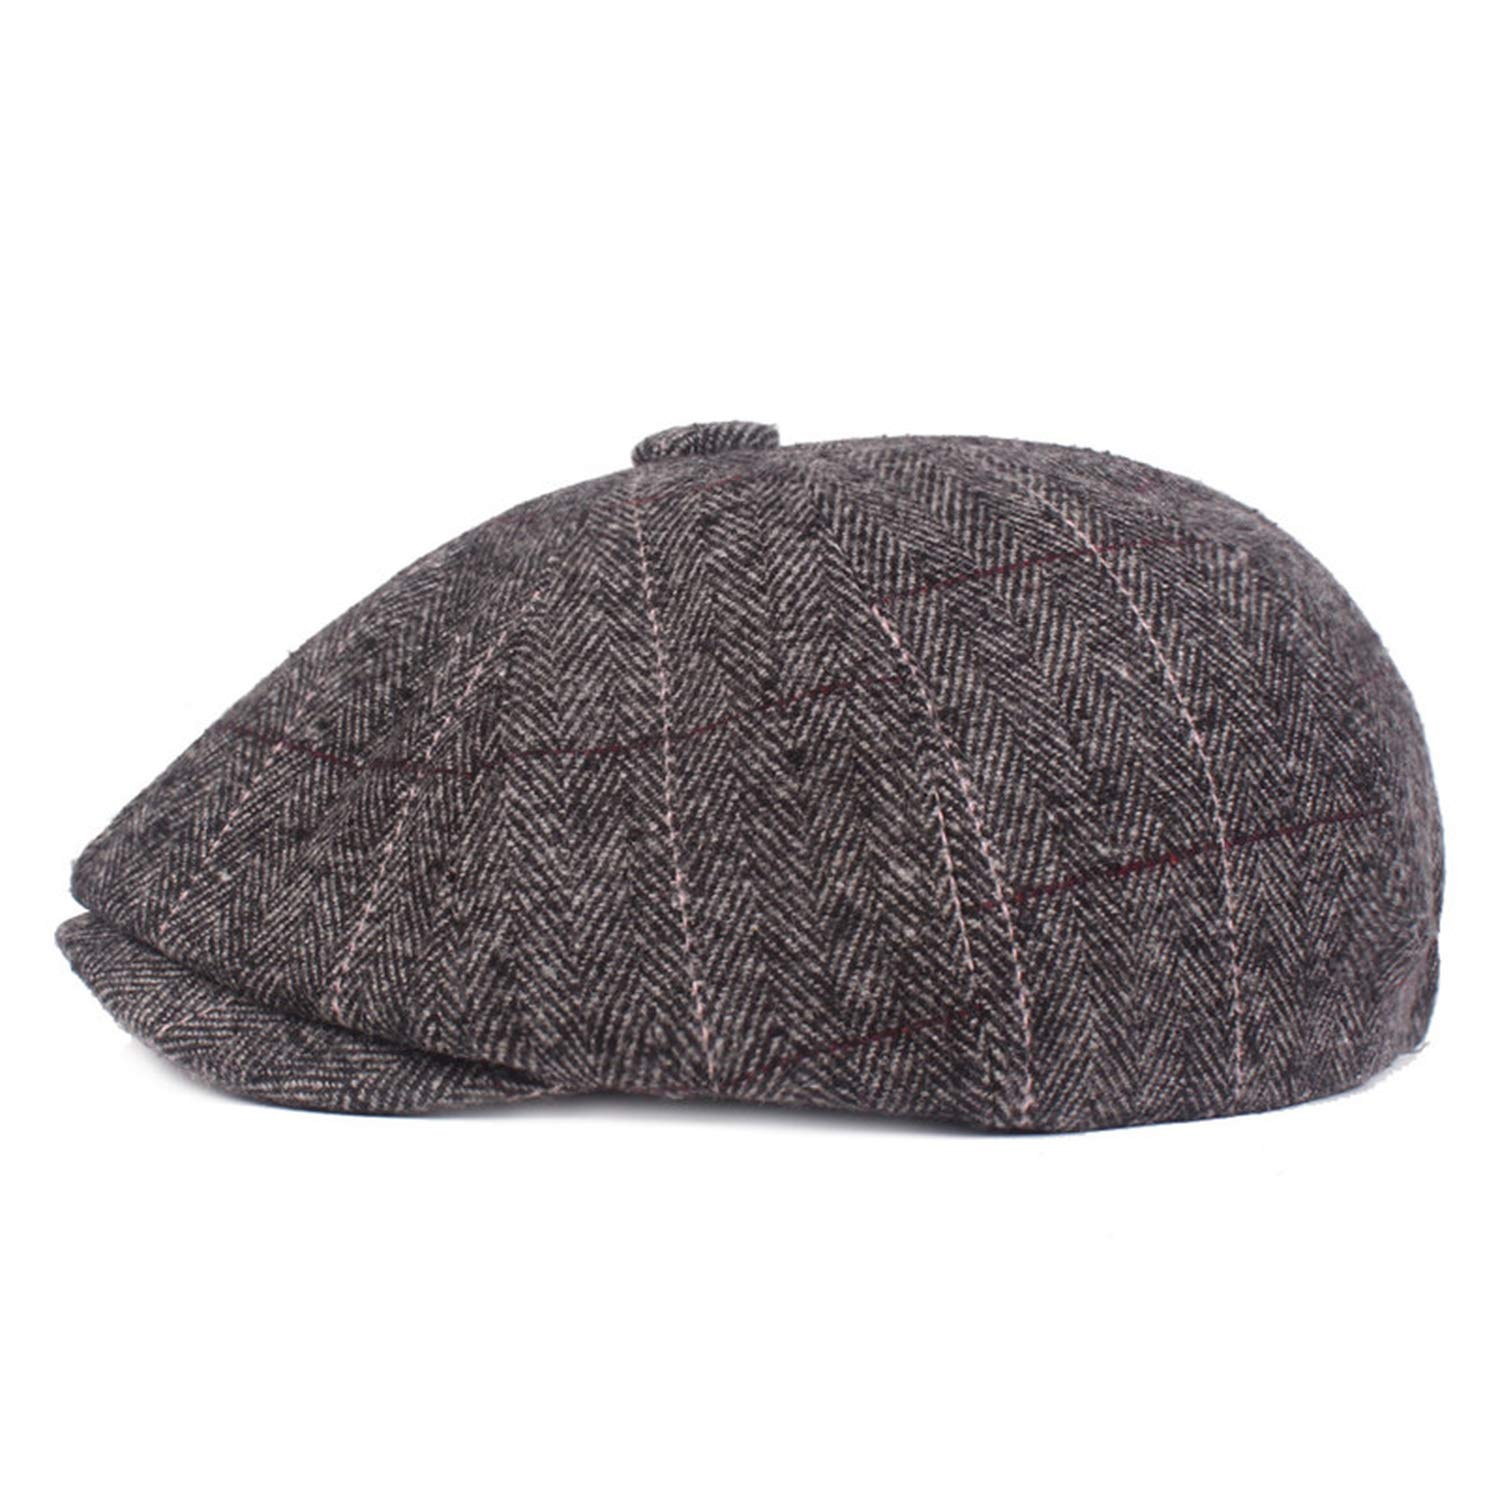 1f49576b96f Autumn Men s Hat Warm Berets Simple Flat Cap for Men Elastically Adjustable  Brands Winter Dad s Hats Coffee at Amazon Men s Clothing store